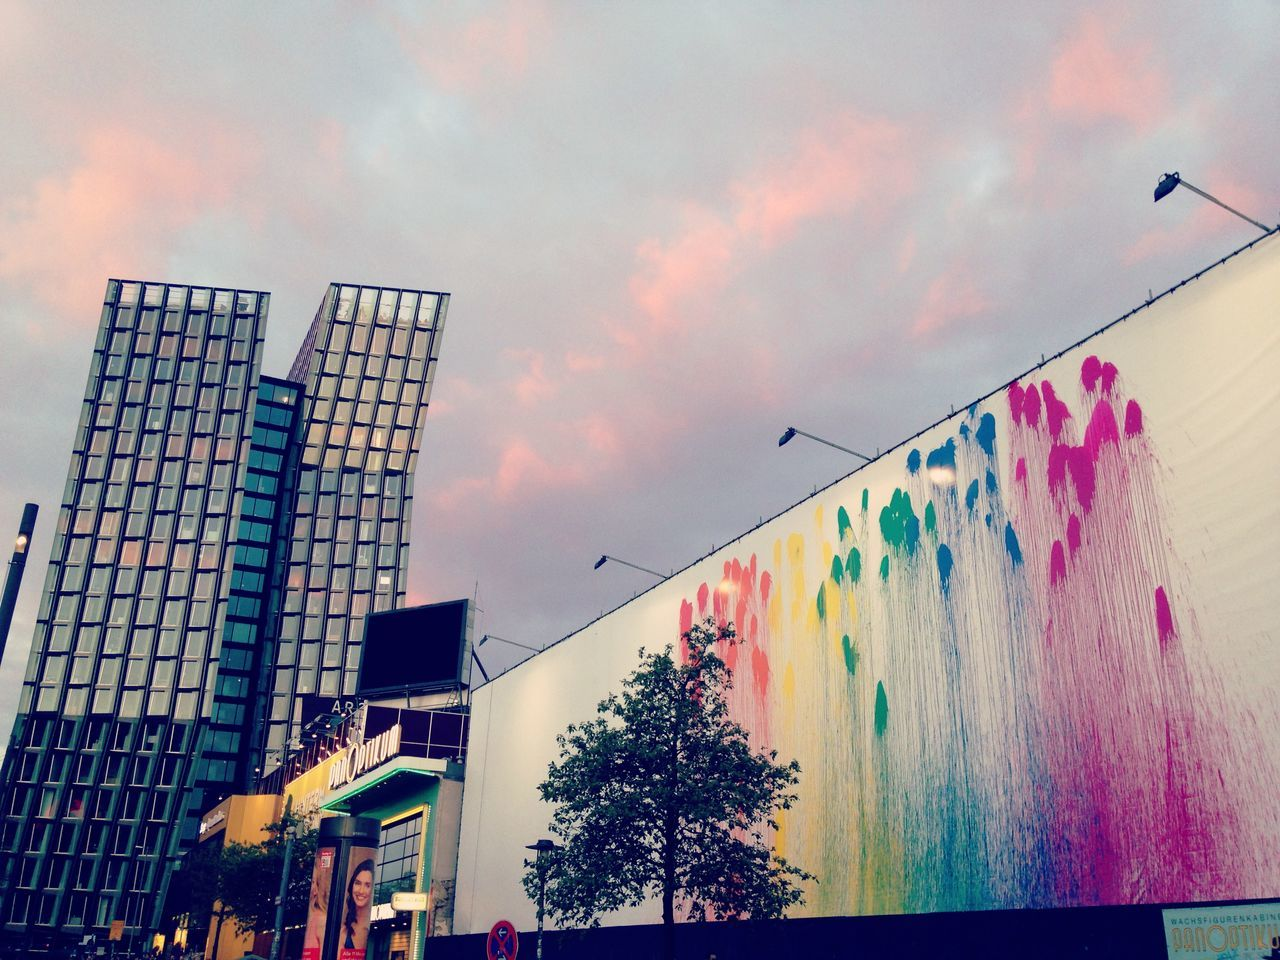 Architecture Building Exterior Built Structure City Cloud - Sky Day Germany Hamburg Low Angle View Mobile Photography Modern Multi Colored No People Outdoors Reeperbahn  Sky Smartphone Photography Spielbudenplatz St. Pauli The Week Of Eyeem Tree